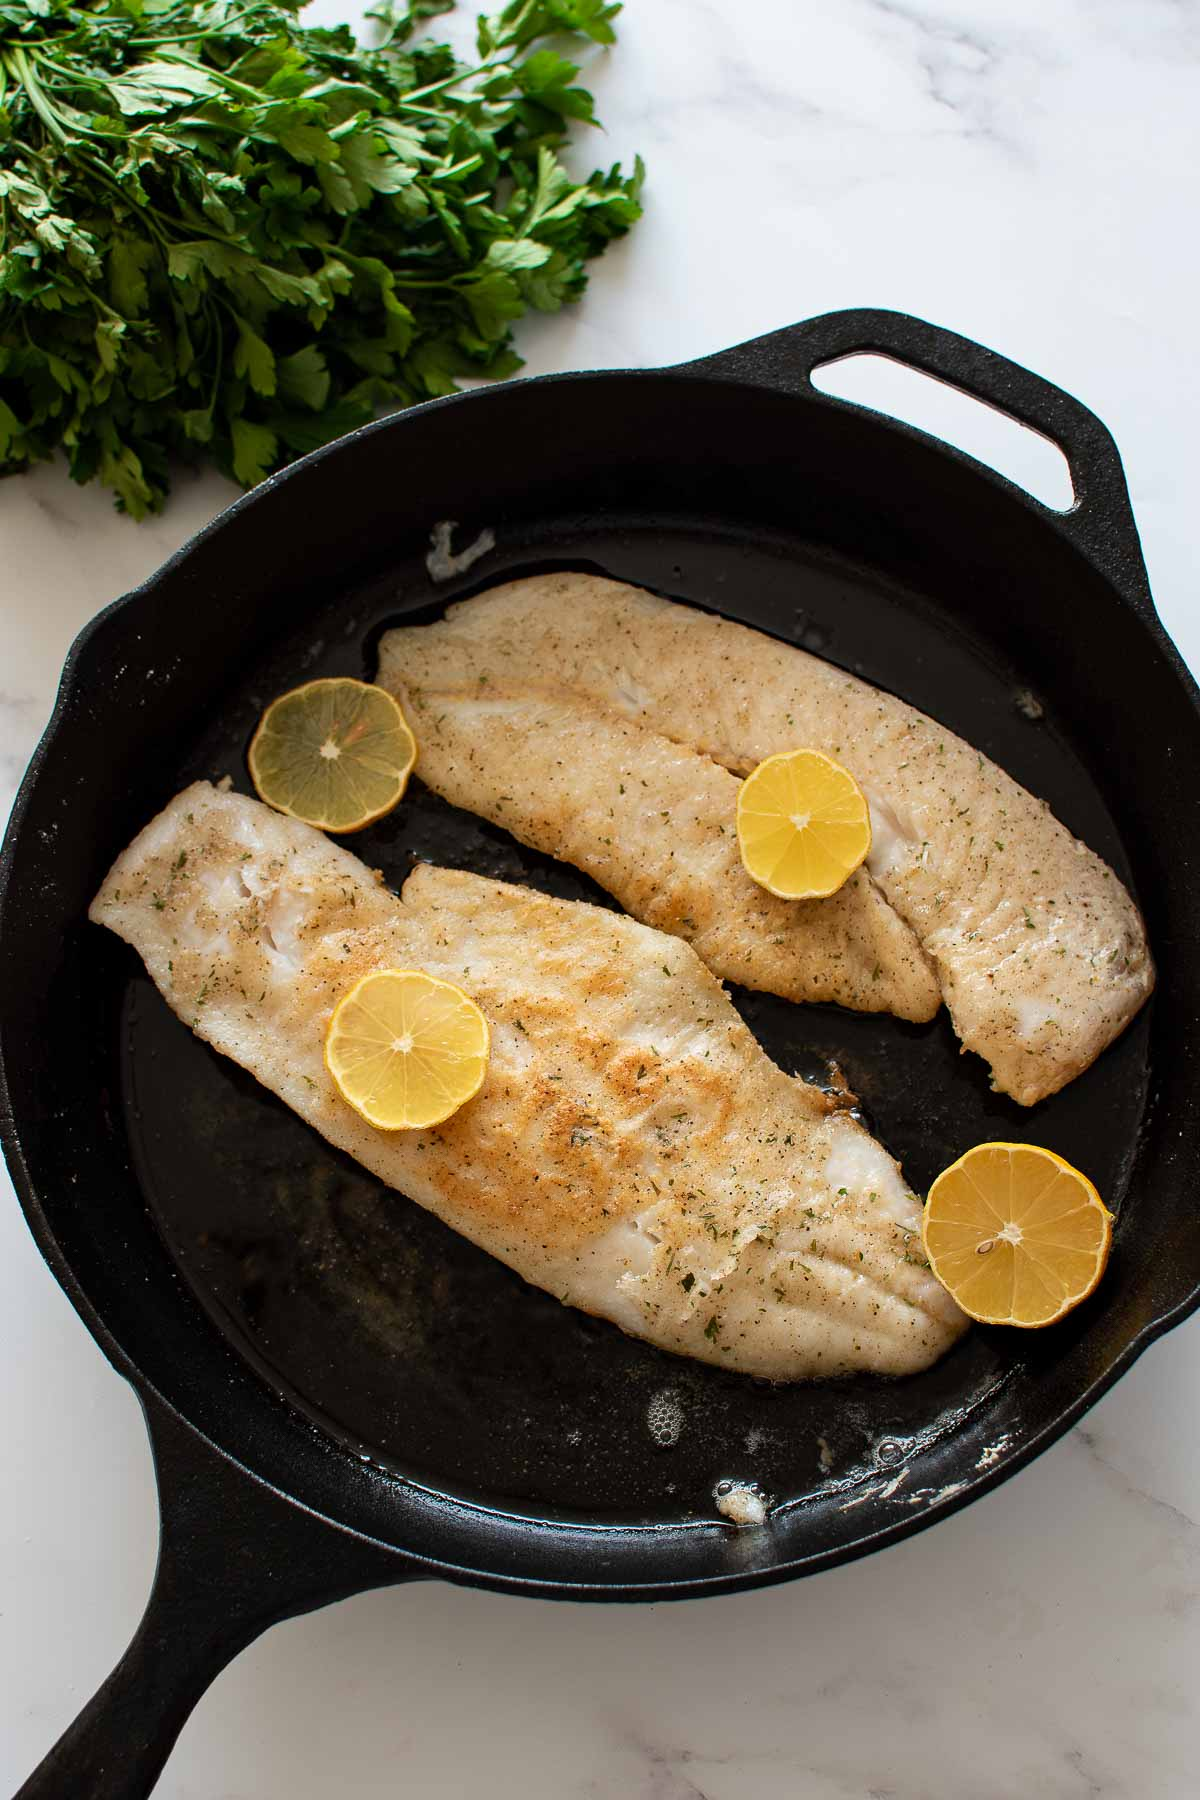 Pan fried hake with lemon slices in a cast iron pan.